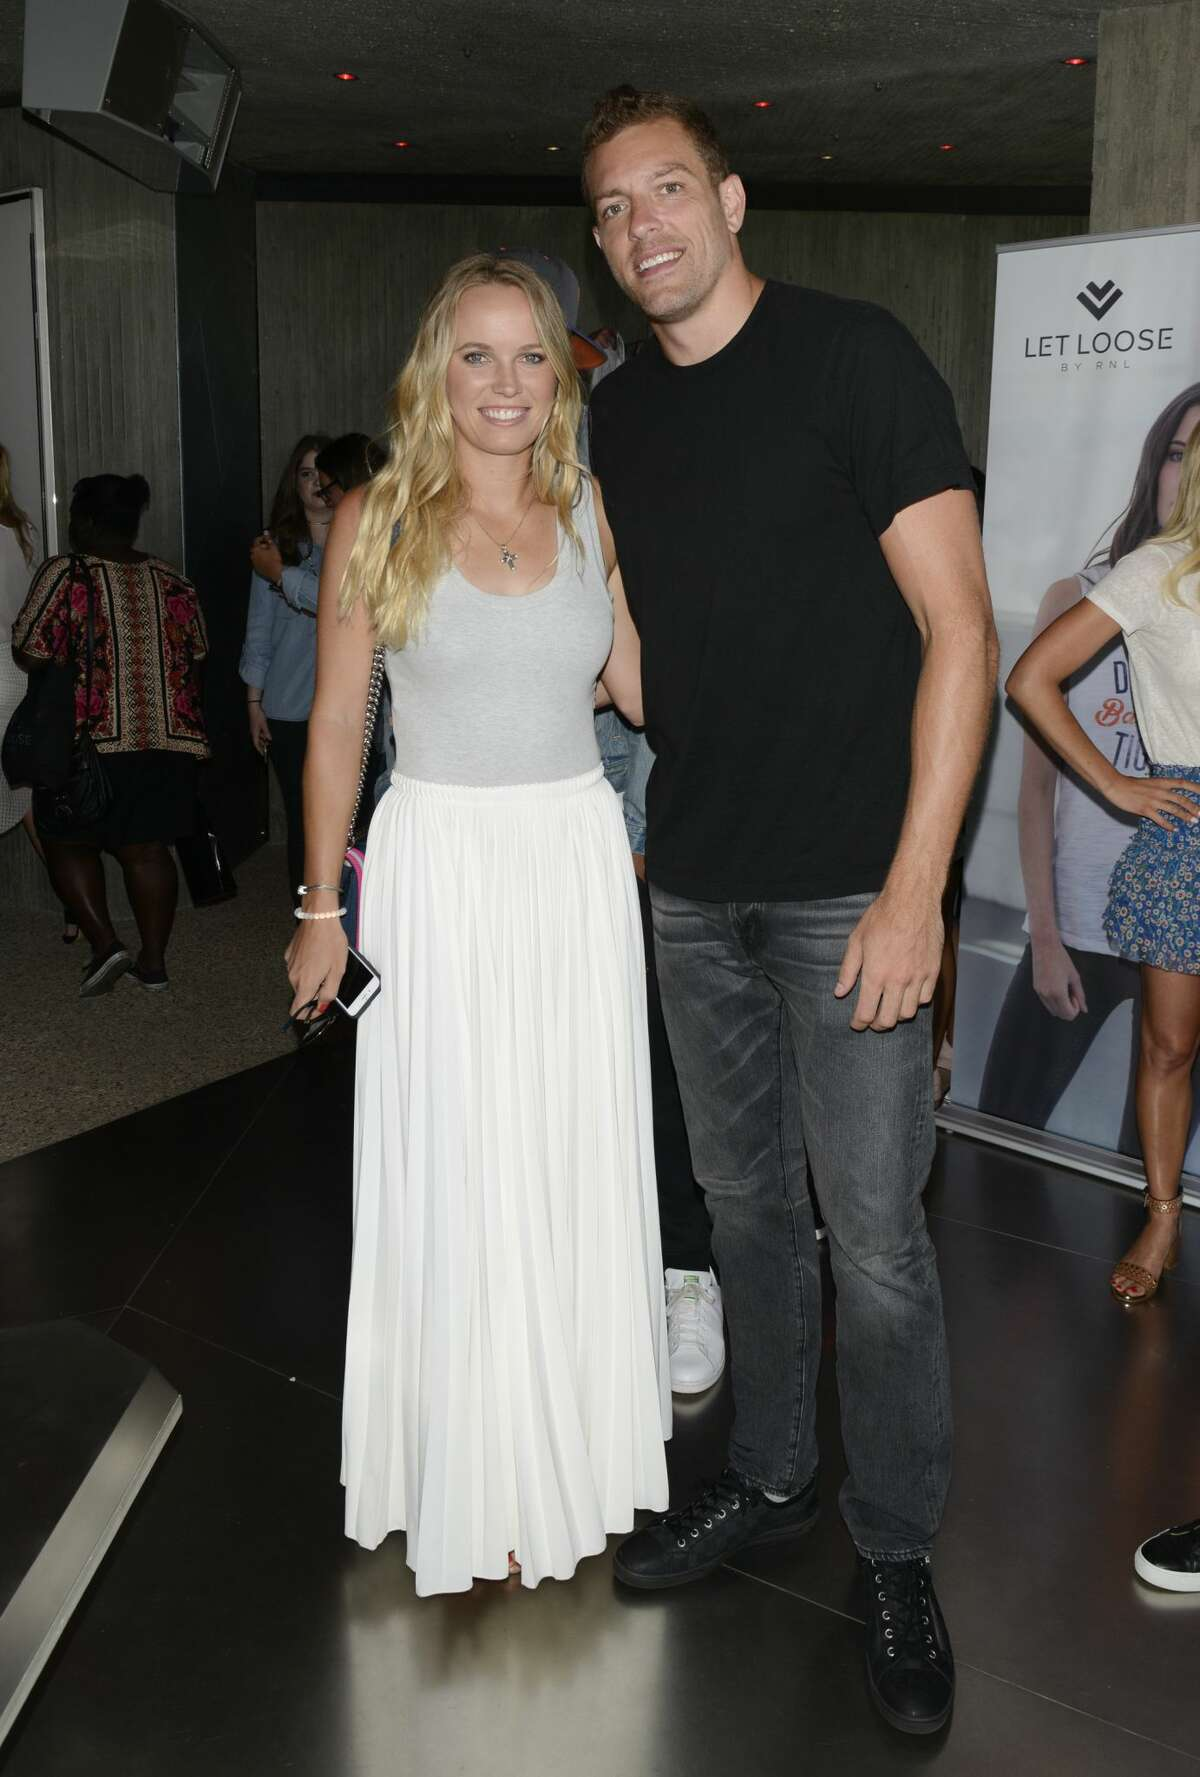 LOS ANGELES, CA - JULY 12: Tennis Player Caroline Wozniacki (L) and NBA Player David Lee attend 2016 ESPYs Talent Resources Sports Luxury Lounge on July 12, 2016 in Los Angeles, California. (Photo by Michael Bezjian/Getty Images for Talent Resources Sports)